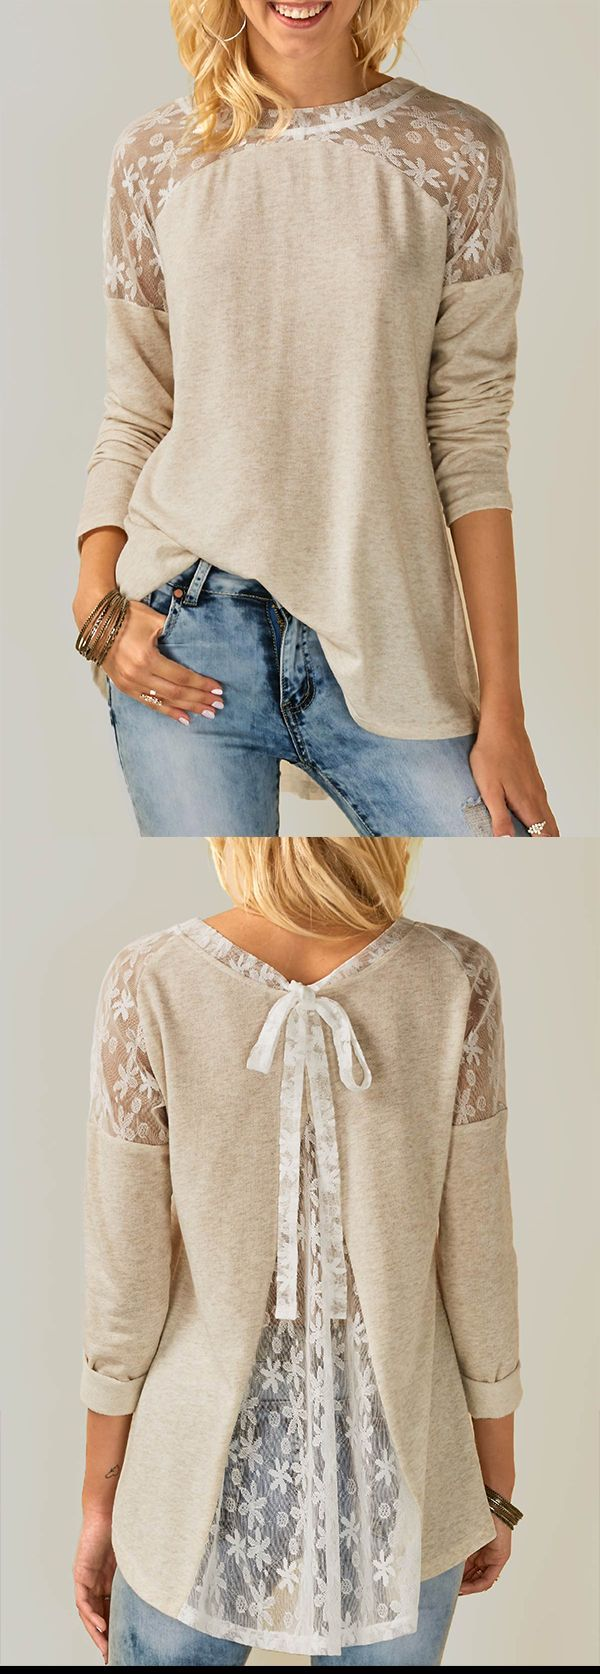 Lace Panel Tie Back Beige Blouse-ROSEWE.COM, free shipping worldwide, check it out.